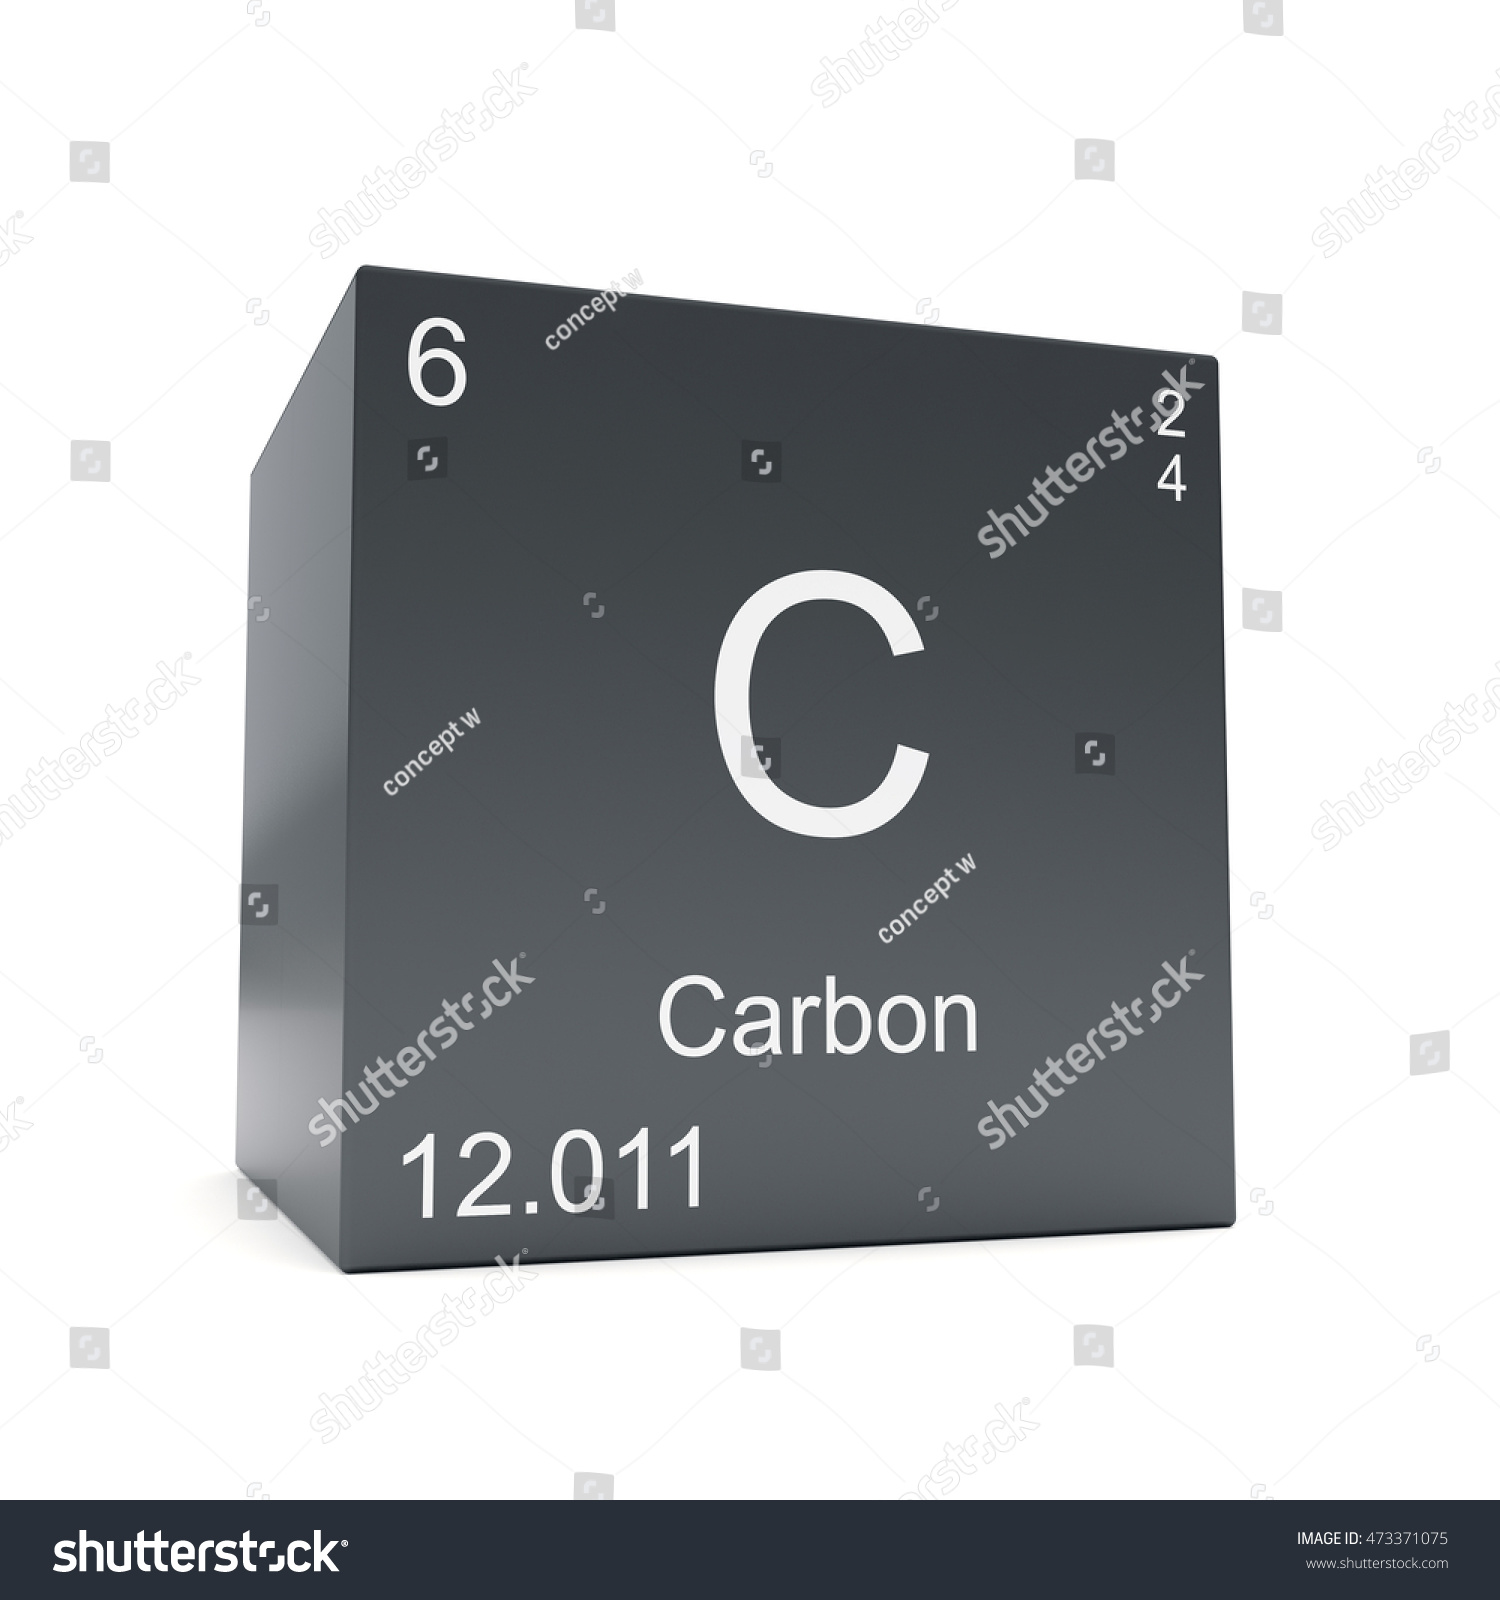 Carbon chemical element symbol periodic table stock illustration carbon chemical element symbol from the periodic table displayed on black cube 3d render gamestrikefo Gallery